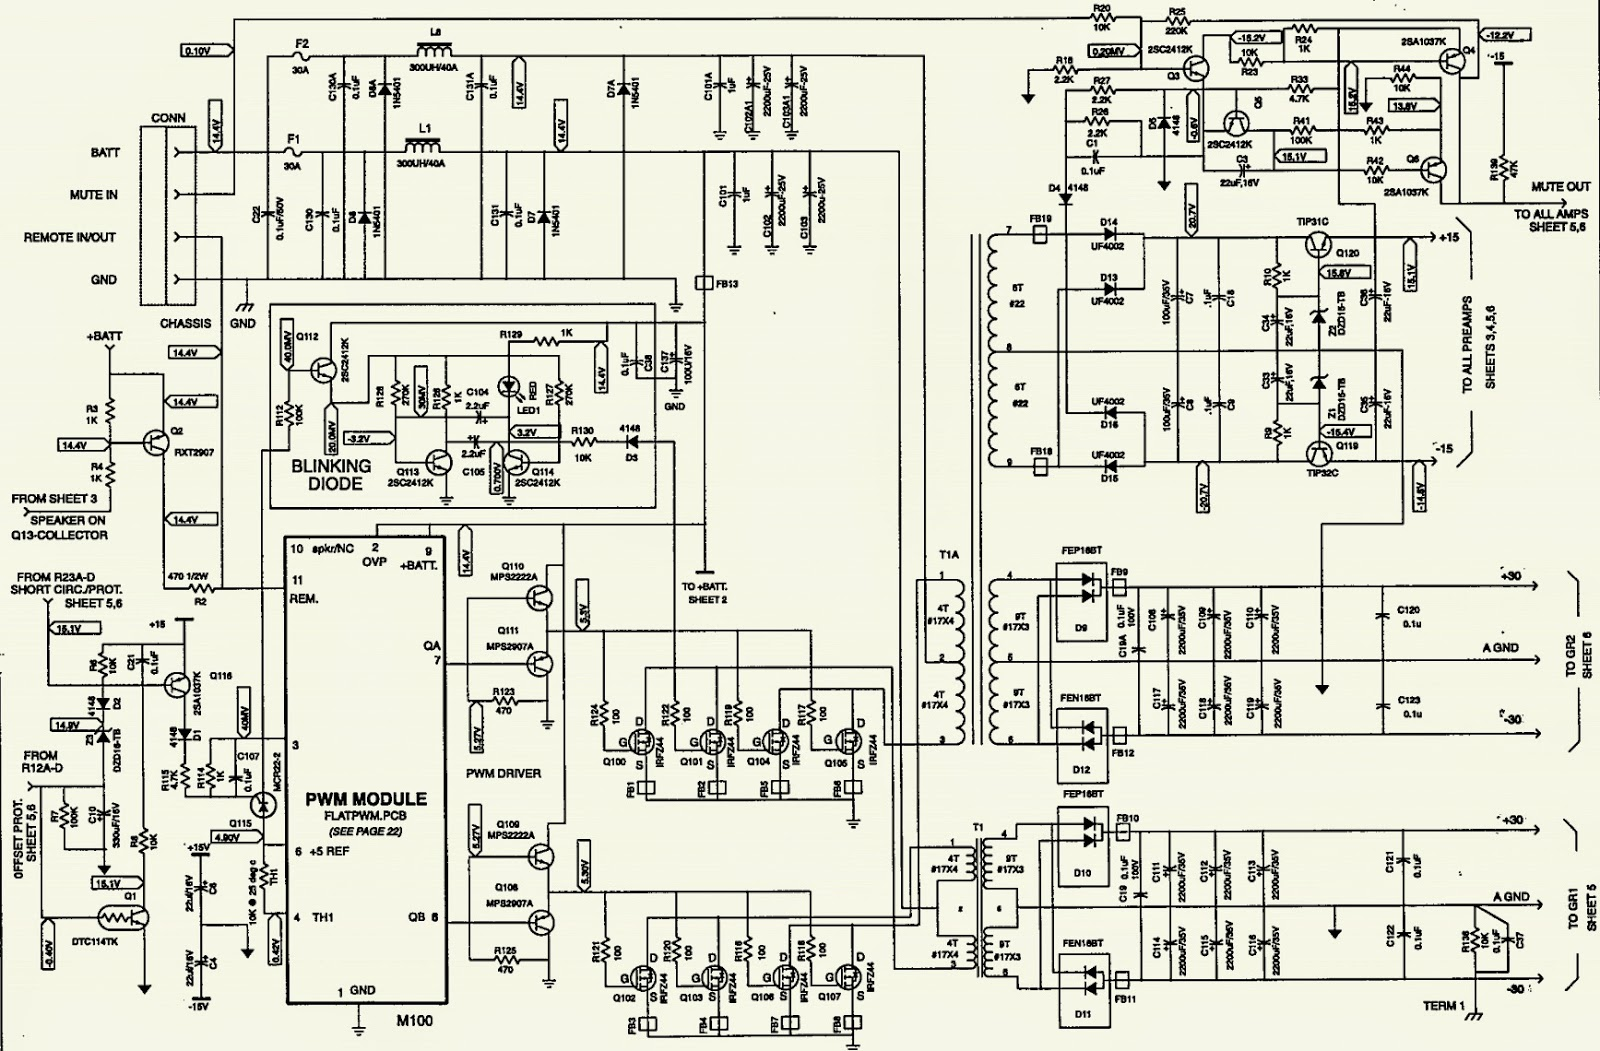 Playstation 1 Power Supply Output Diagram Schematics Data Wiring Circuit Samsung Lcd Tv Schematic Dlp Elsavadorla 2 Slim